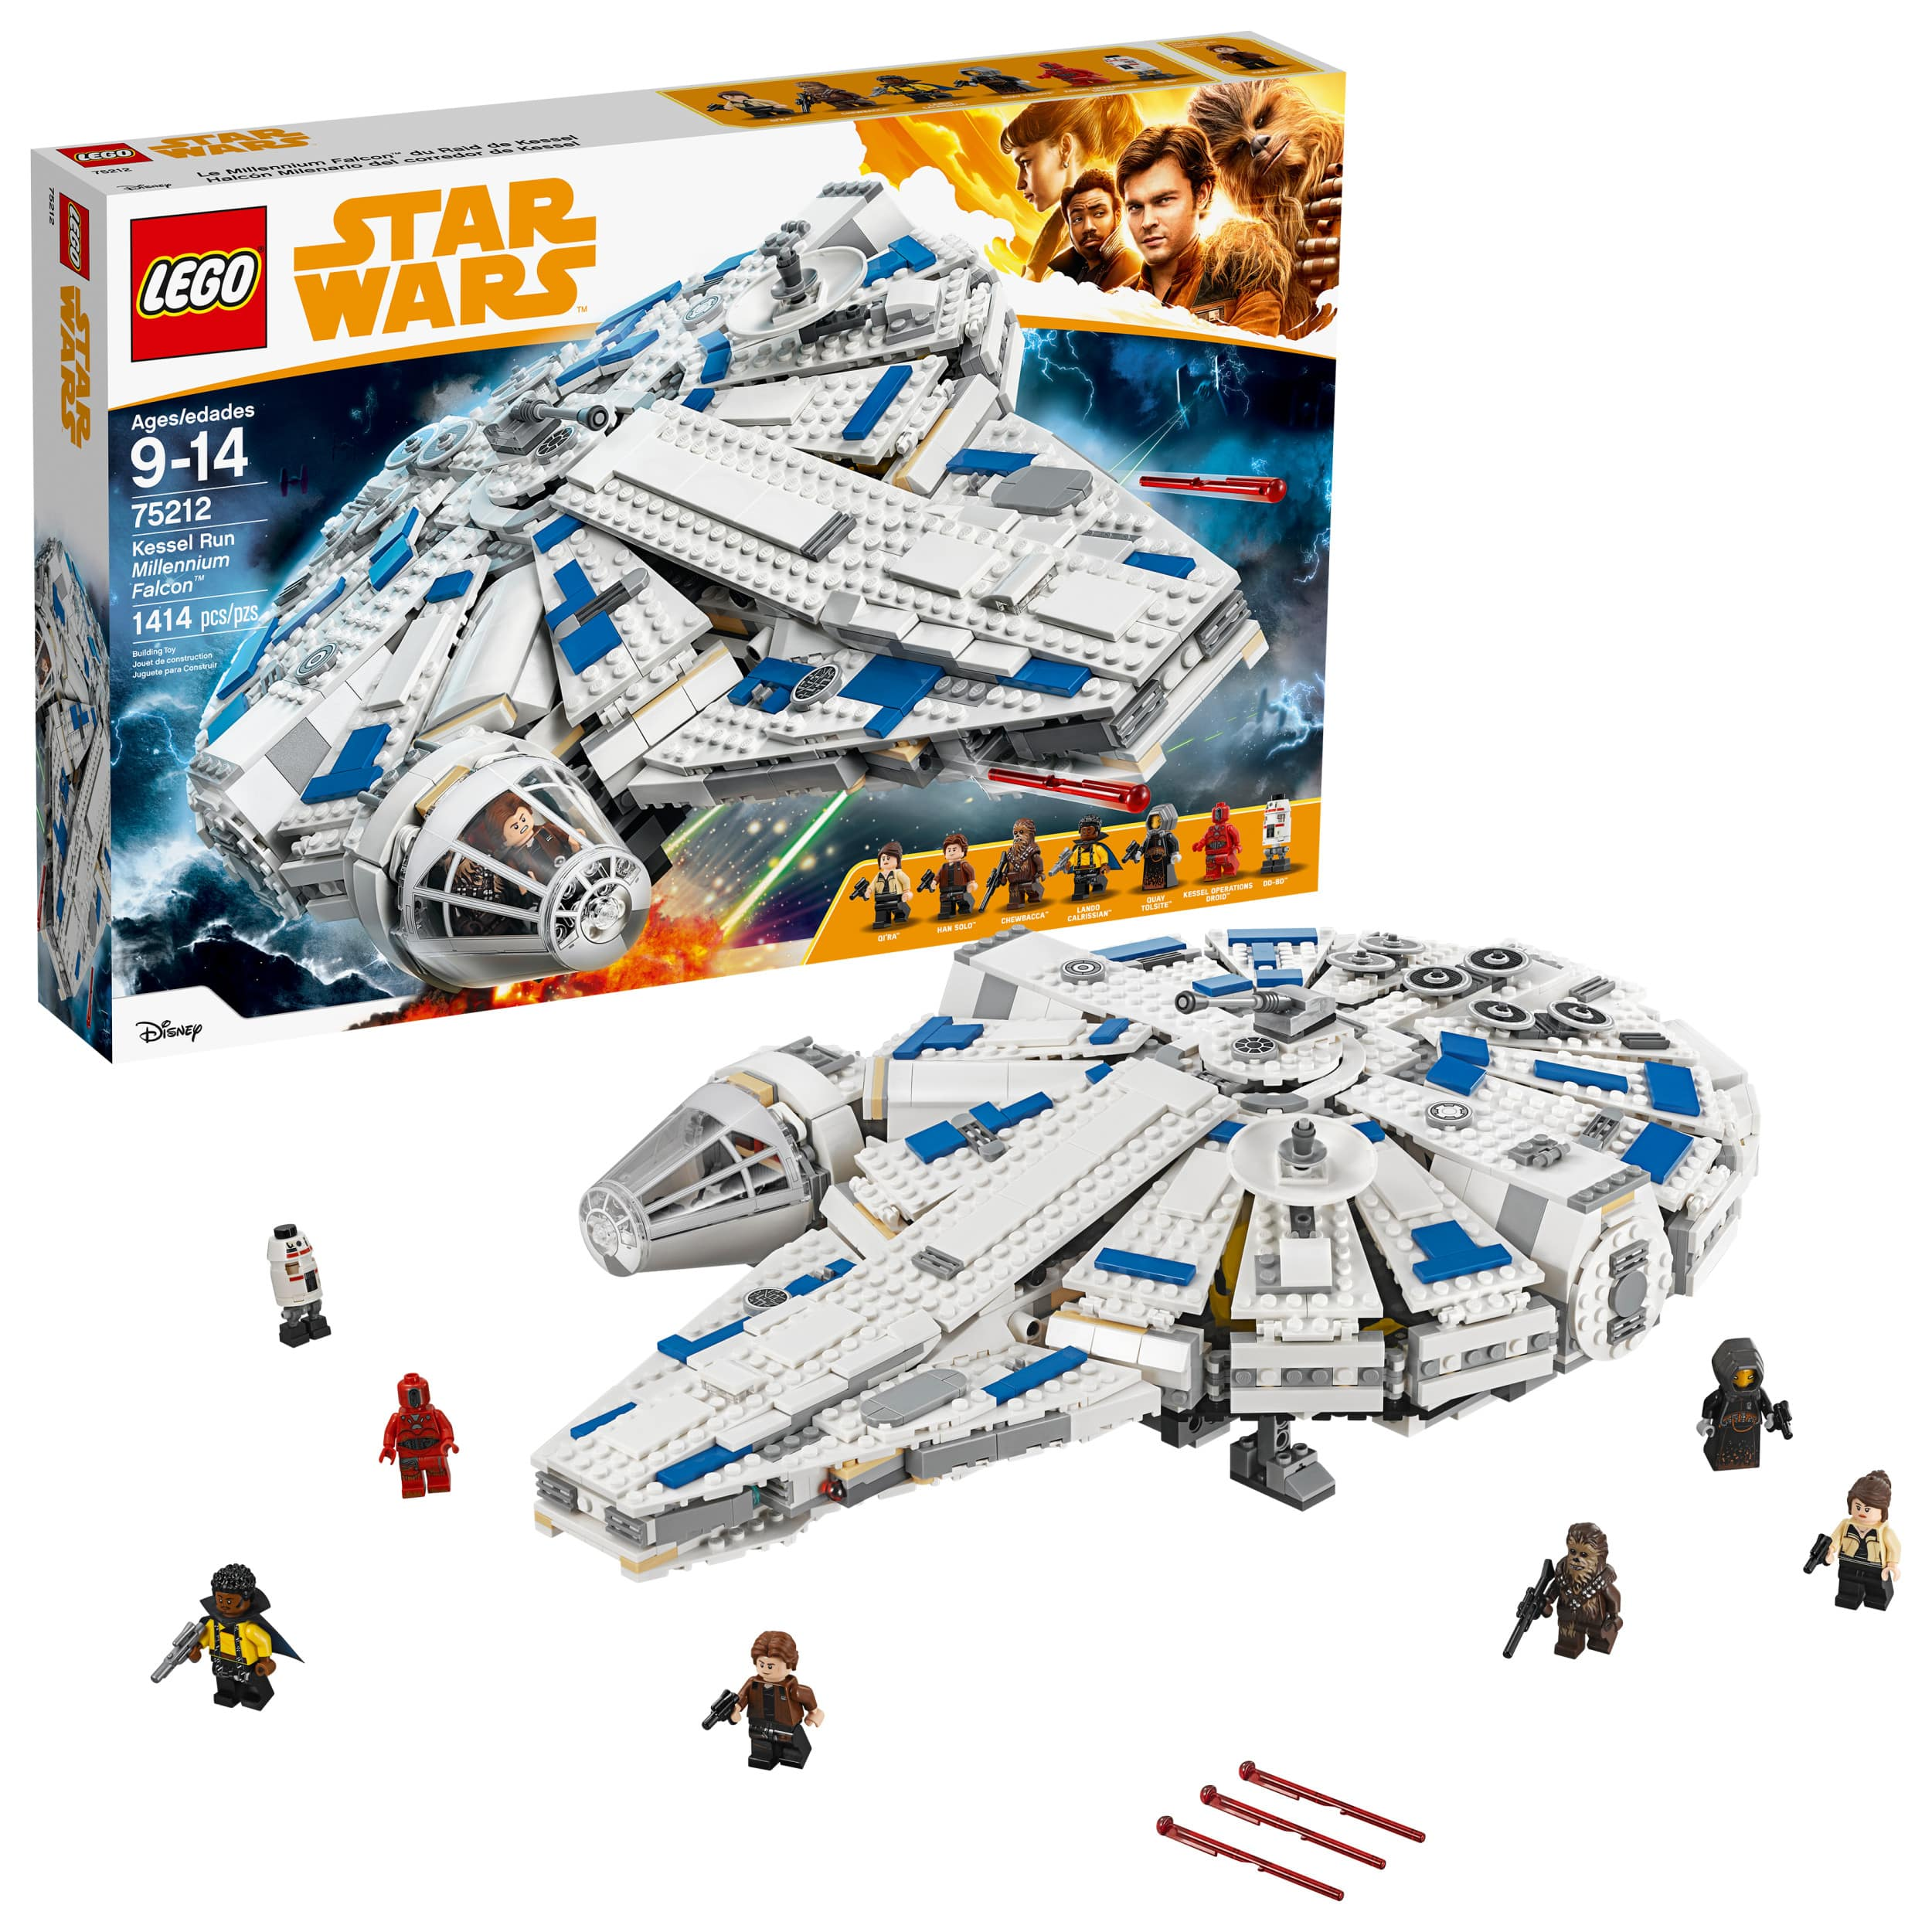 Lego Star Wars Kessel Run Millennium Falcon @Walmart B&M Normally $169.99 now $79.99 - 53% off YMMV